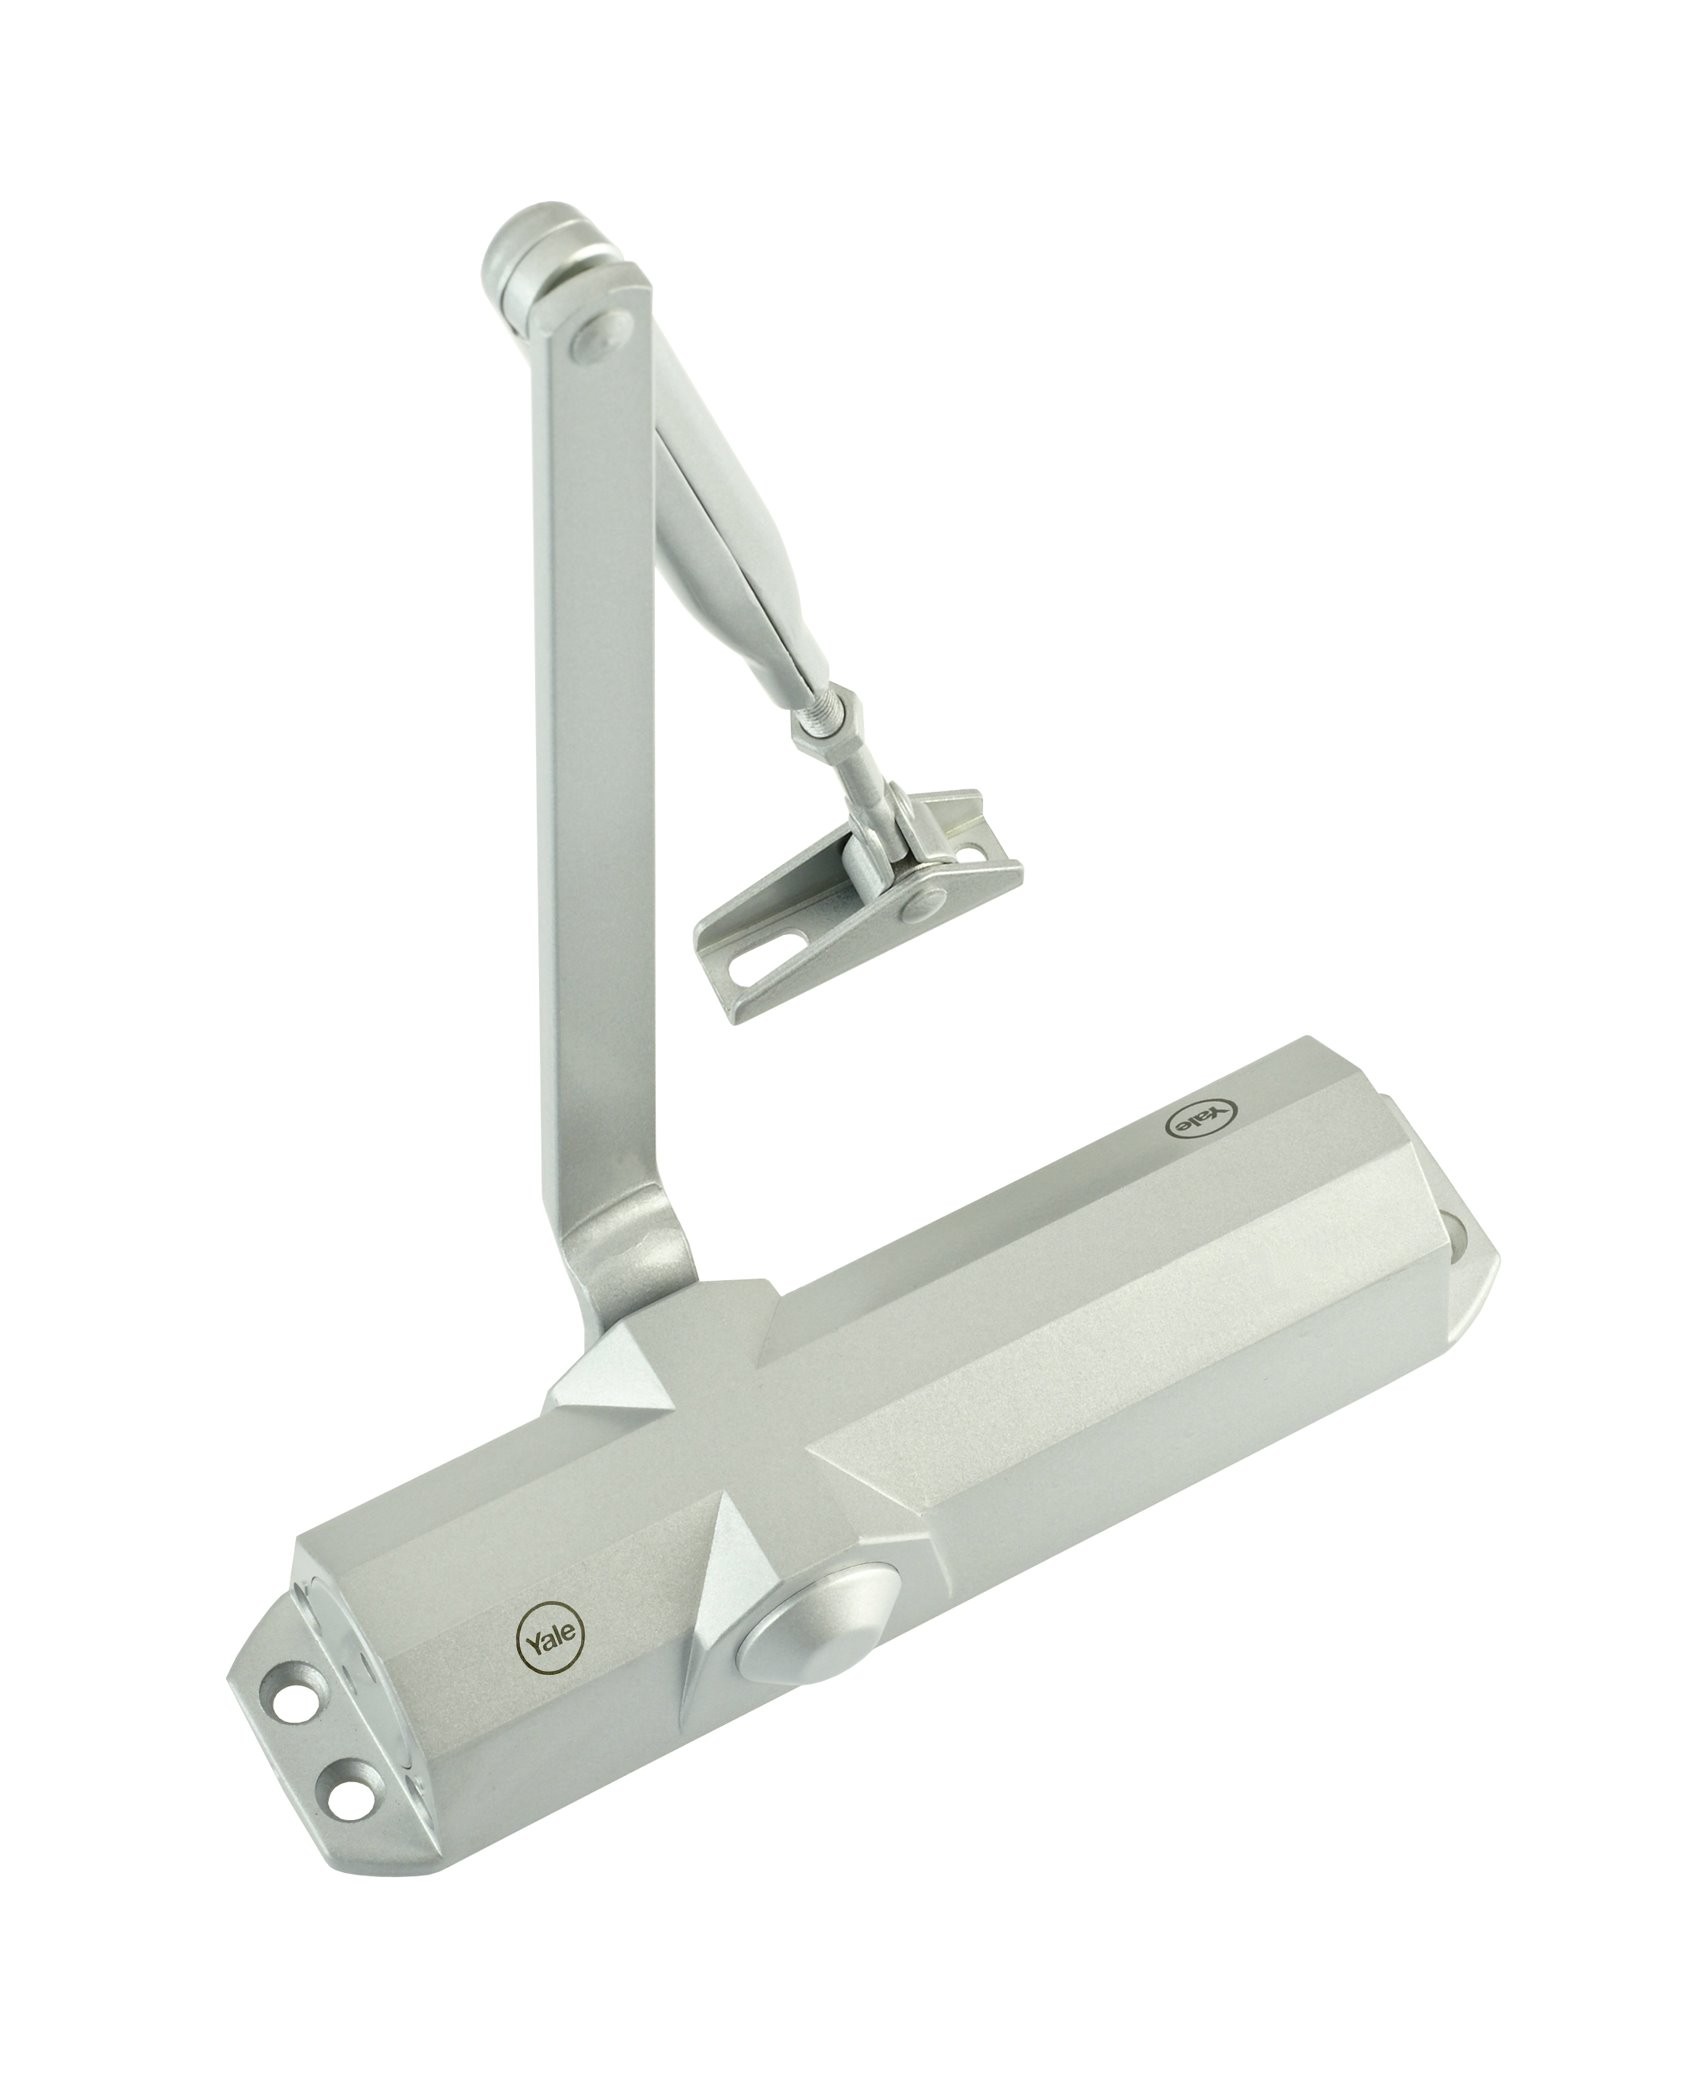 Yale 4000 CE Door Closer - Size 2-4